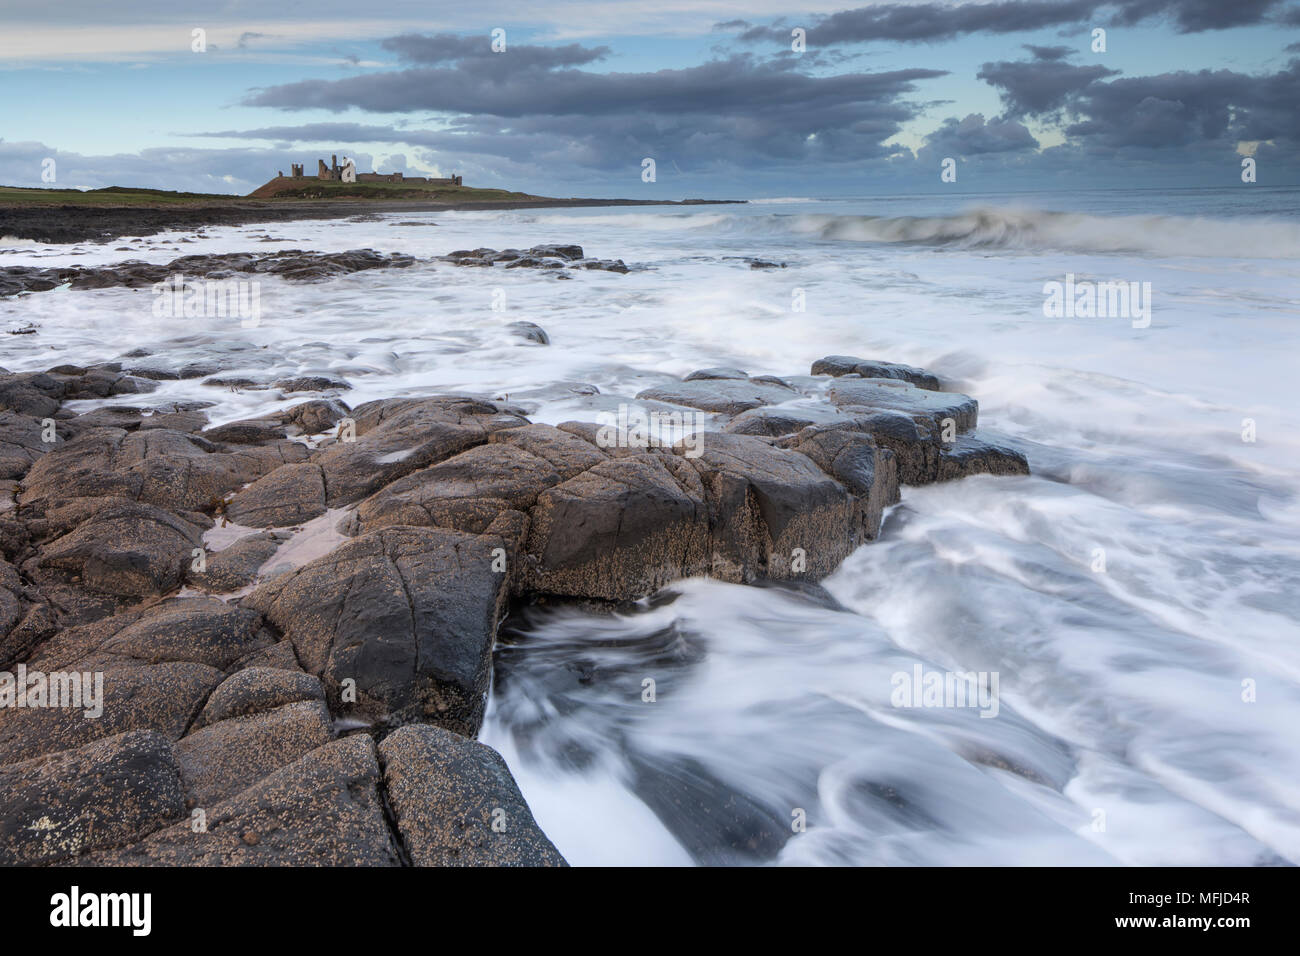 Dunstanburgh castle from the rocky shore close to Craster, Northumberland, England, United Kingdom, Europe - Stock Image